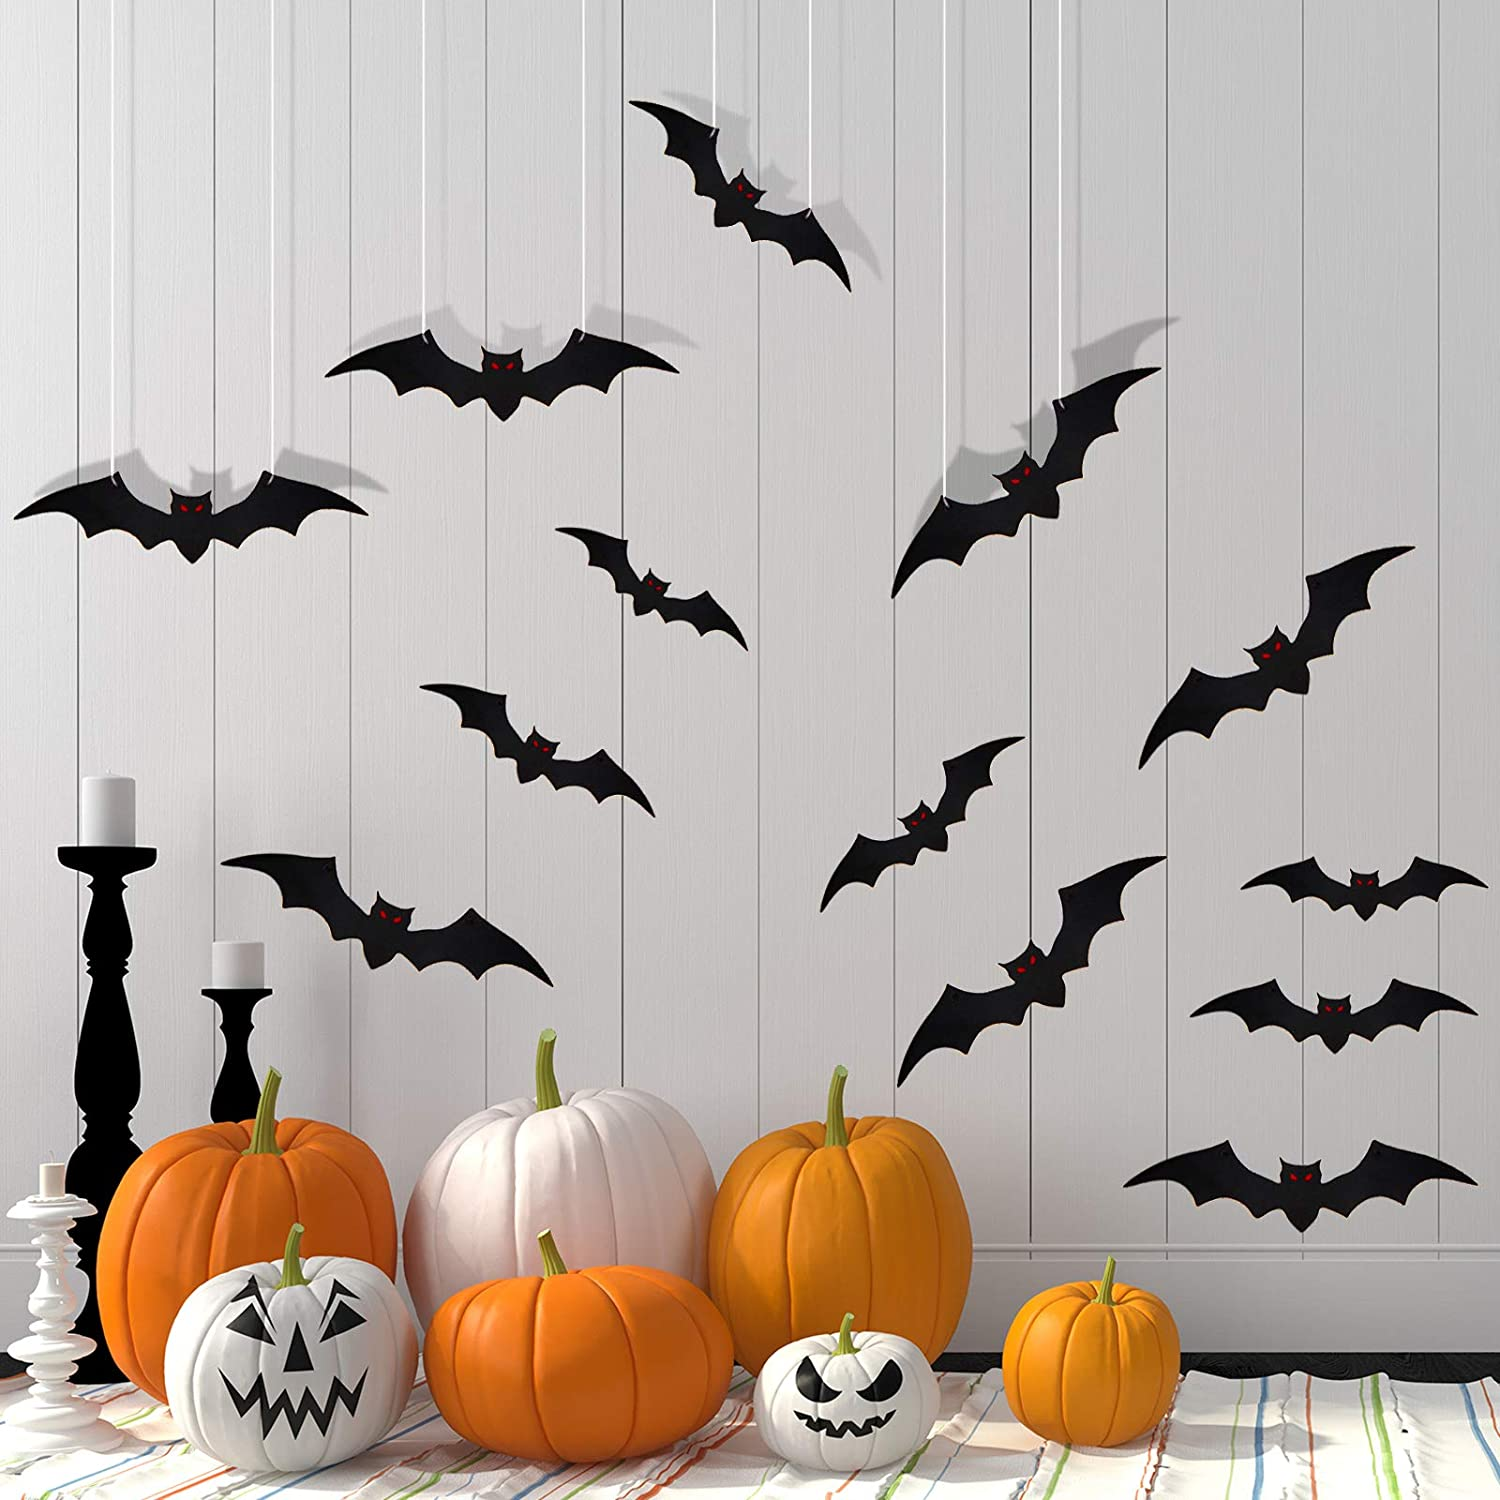 60 Pieces Halloween Bat Cutouts Hanging Bats for Home Decor, 3D Black Scary Bats Wall Decals and Window Clings for Halloween Indoor Outdoor Yard Party Supplies